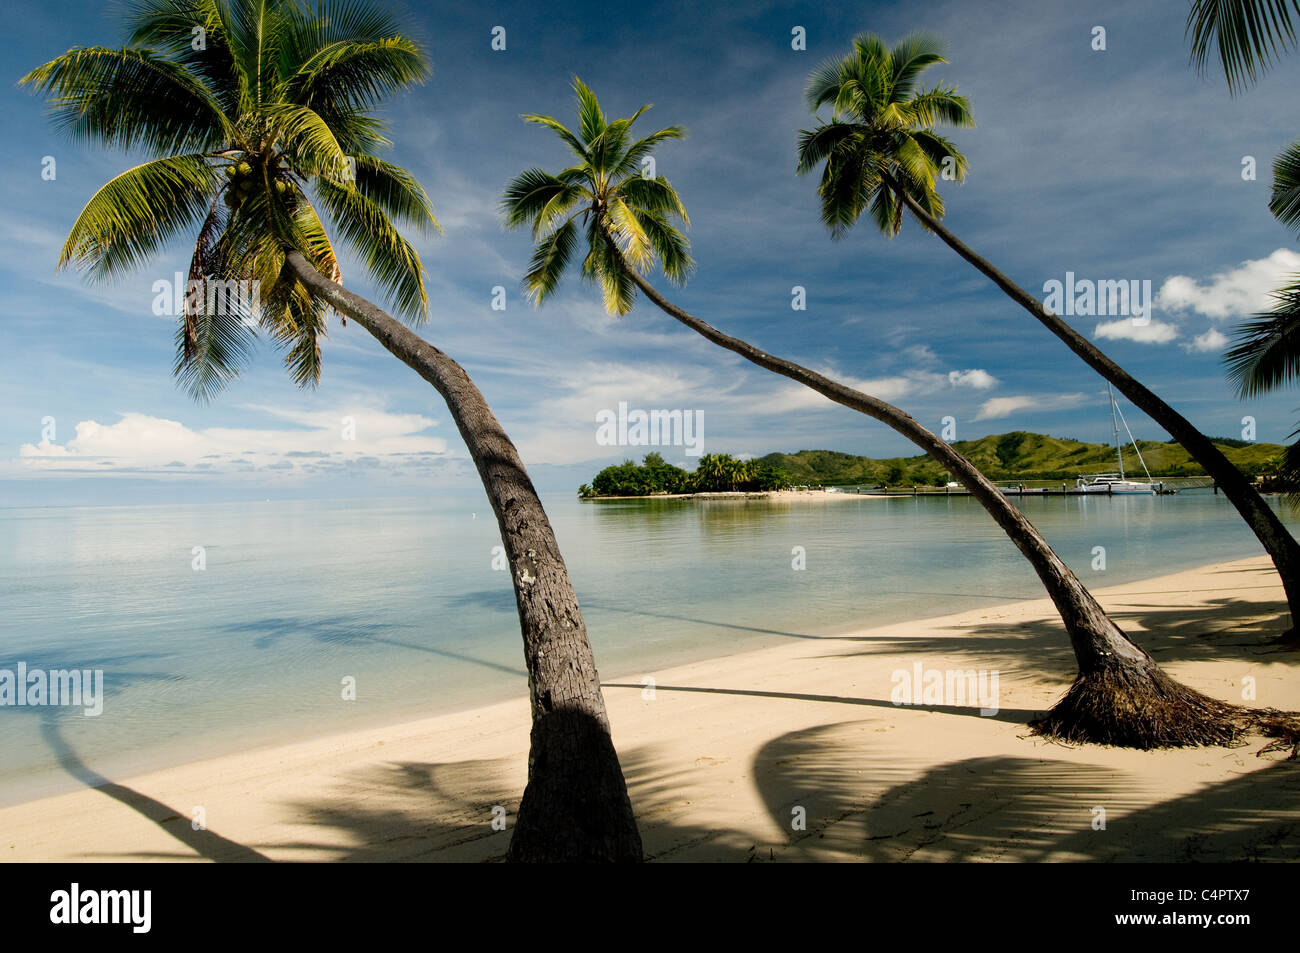 trio of palm trees lean toward the ocean on an island bay in Fiji South Pacific - Stock Image